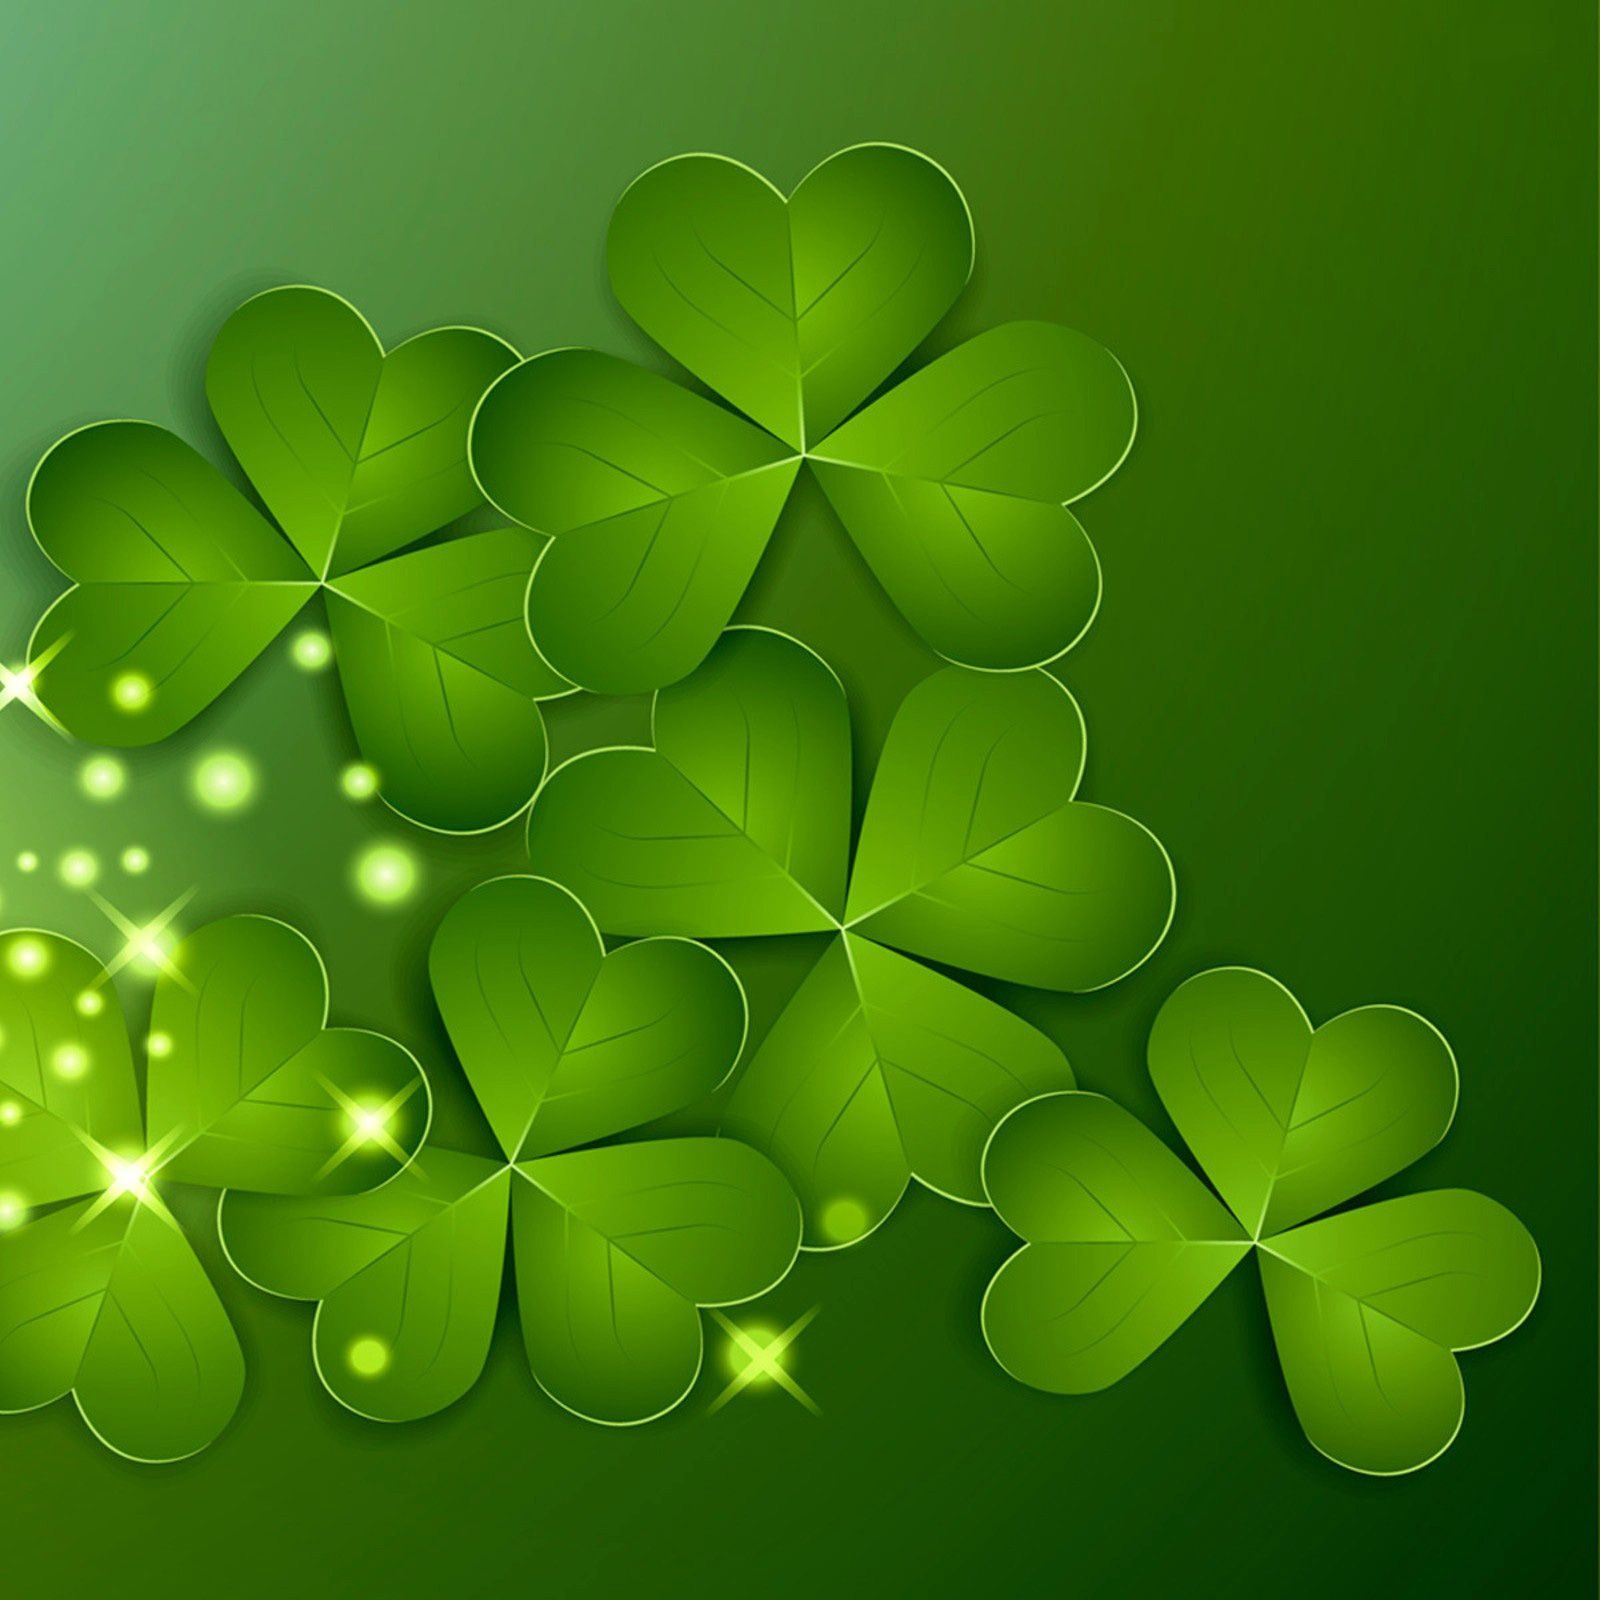 irish wallpaper Google Search Ipad wallpaper, Cool